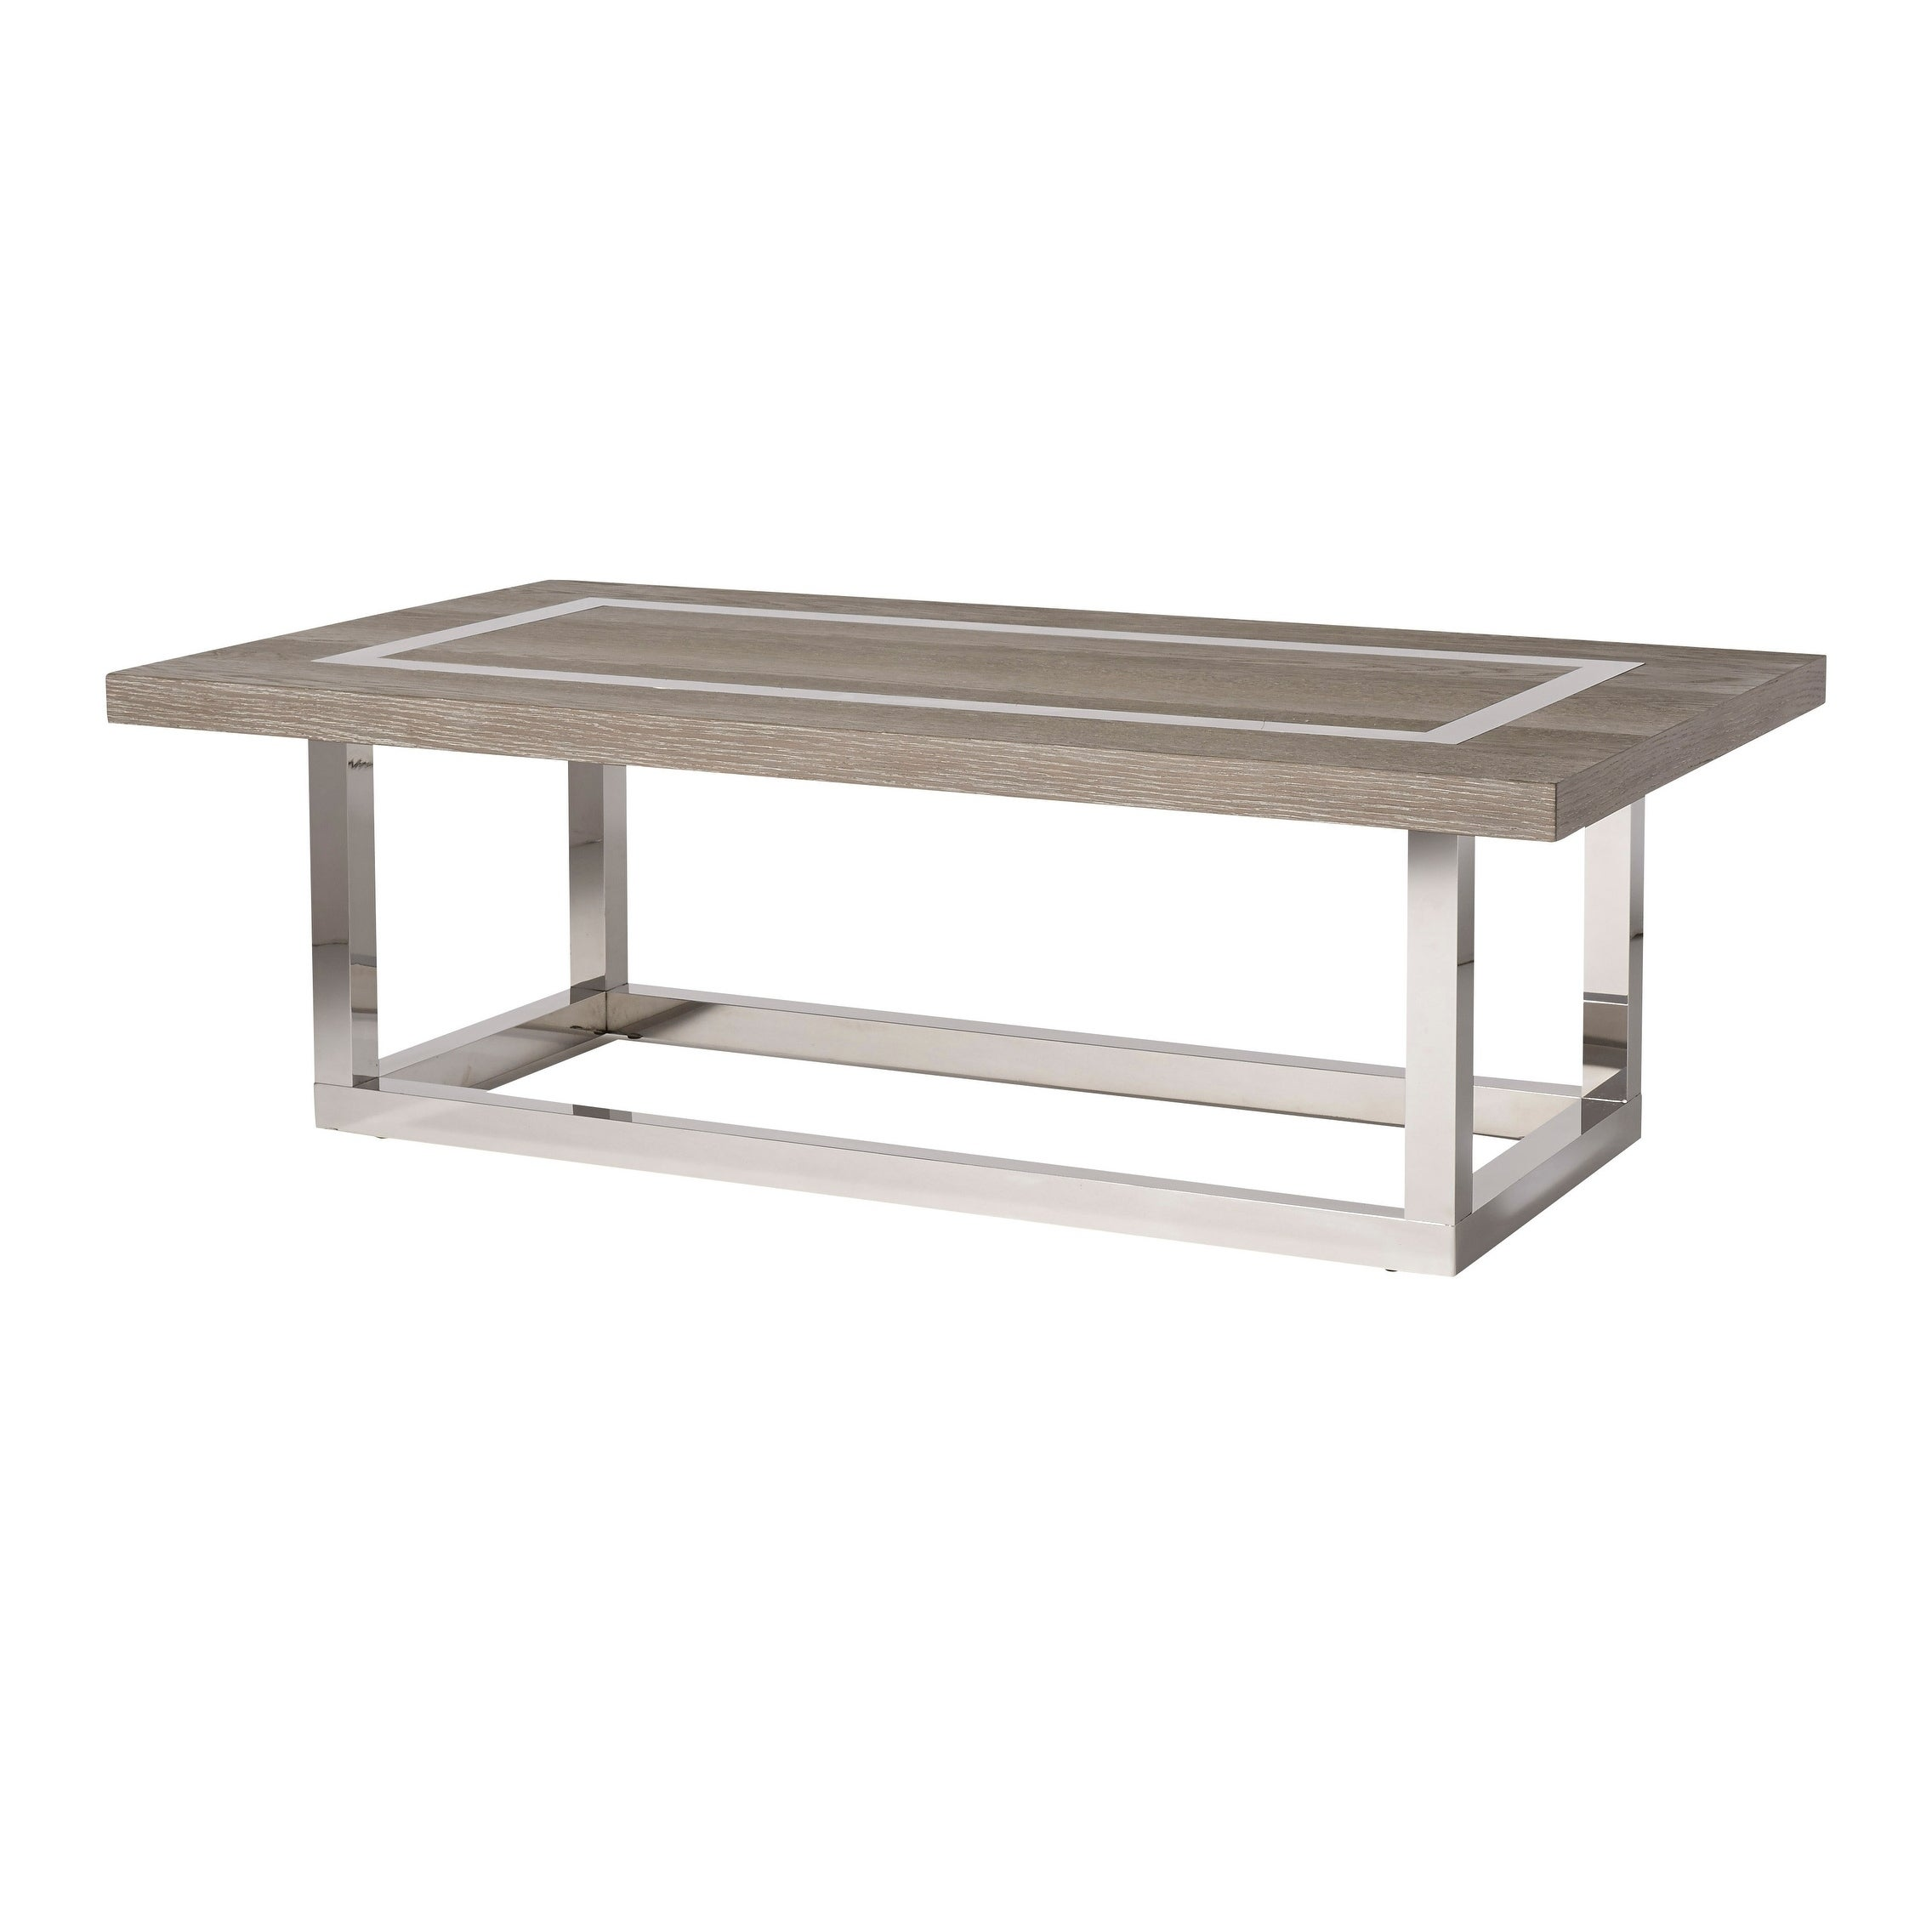 Shop Modern Flint And Stainless Steel Rectangle Wyatt Cocktail Table   Free  Shipping Today   Overstock.com   18704991